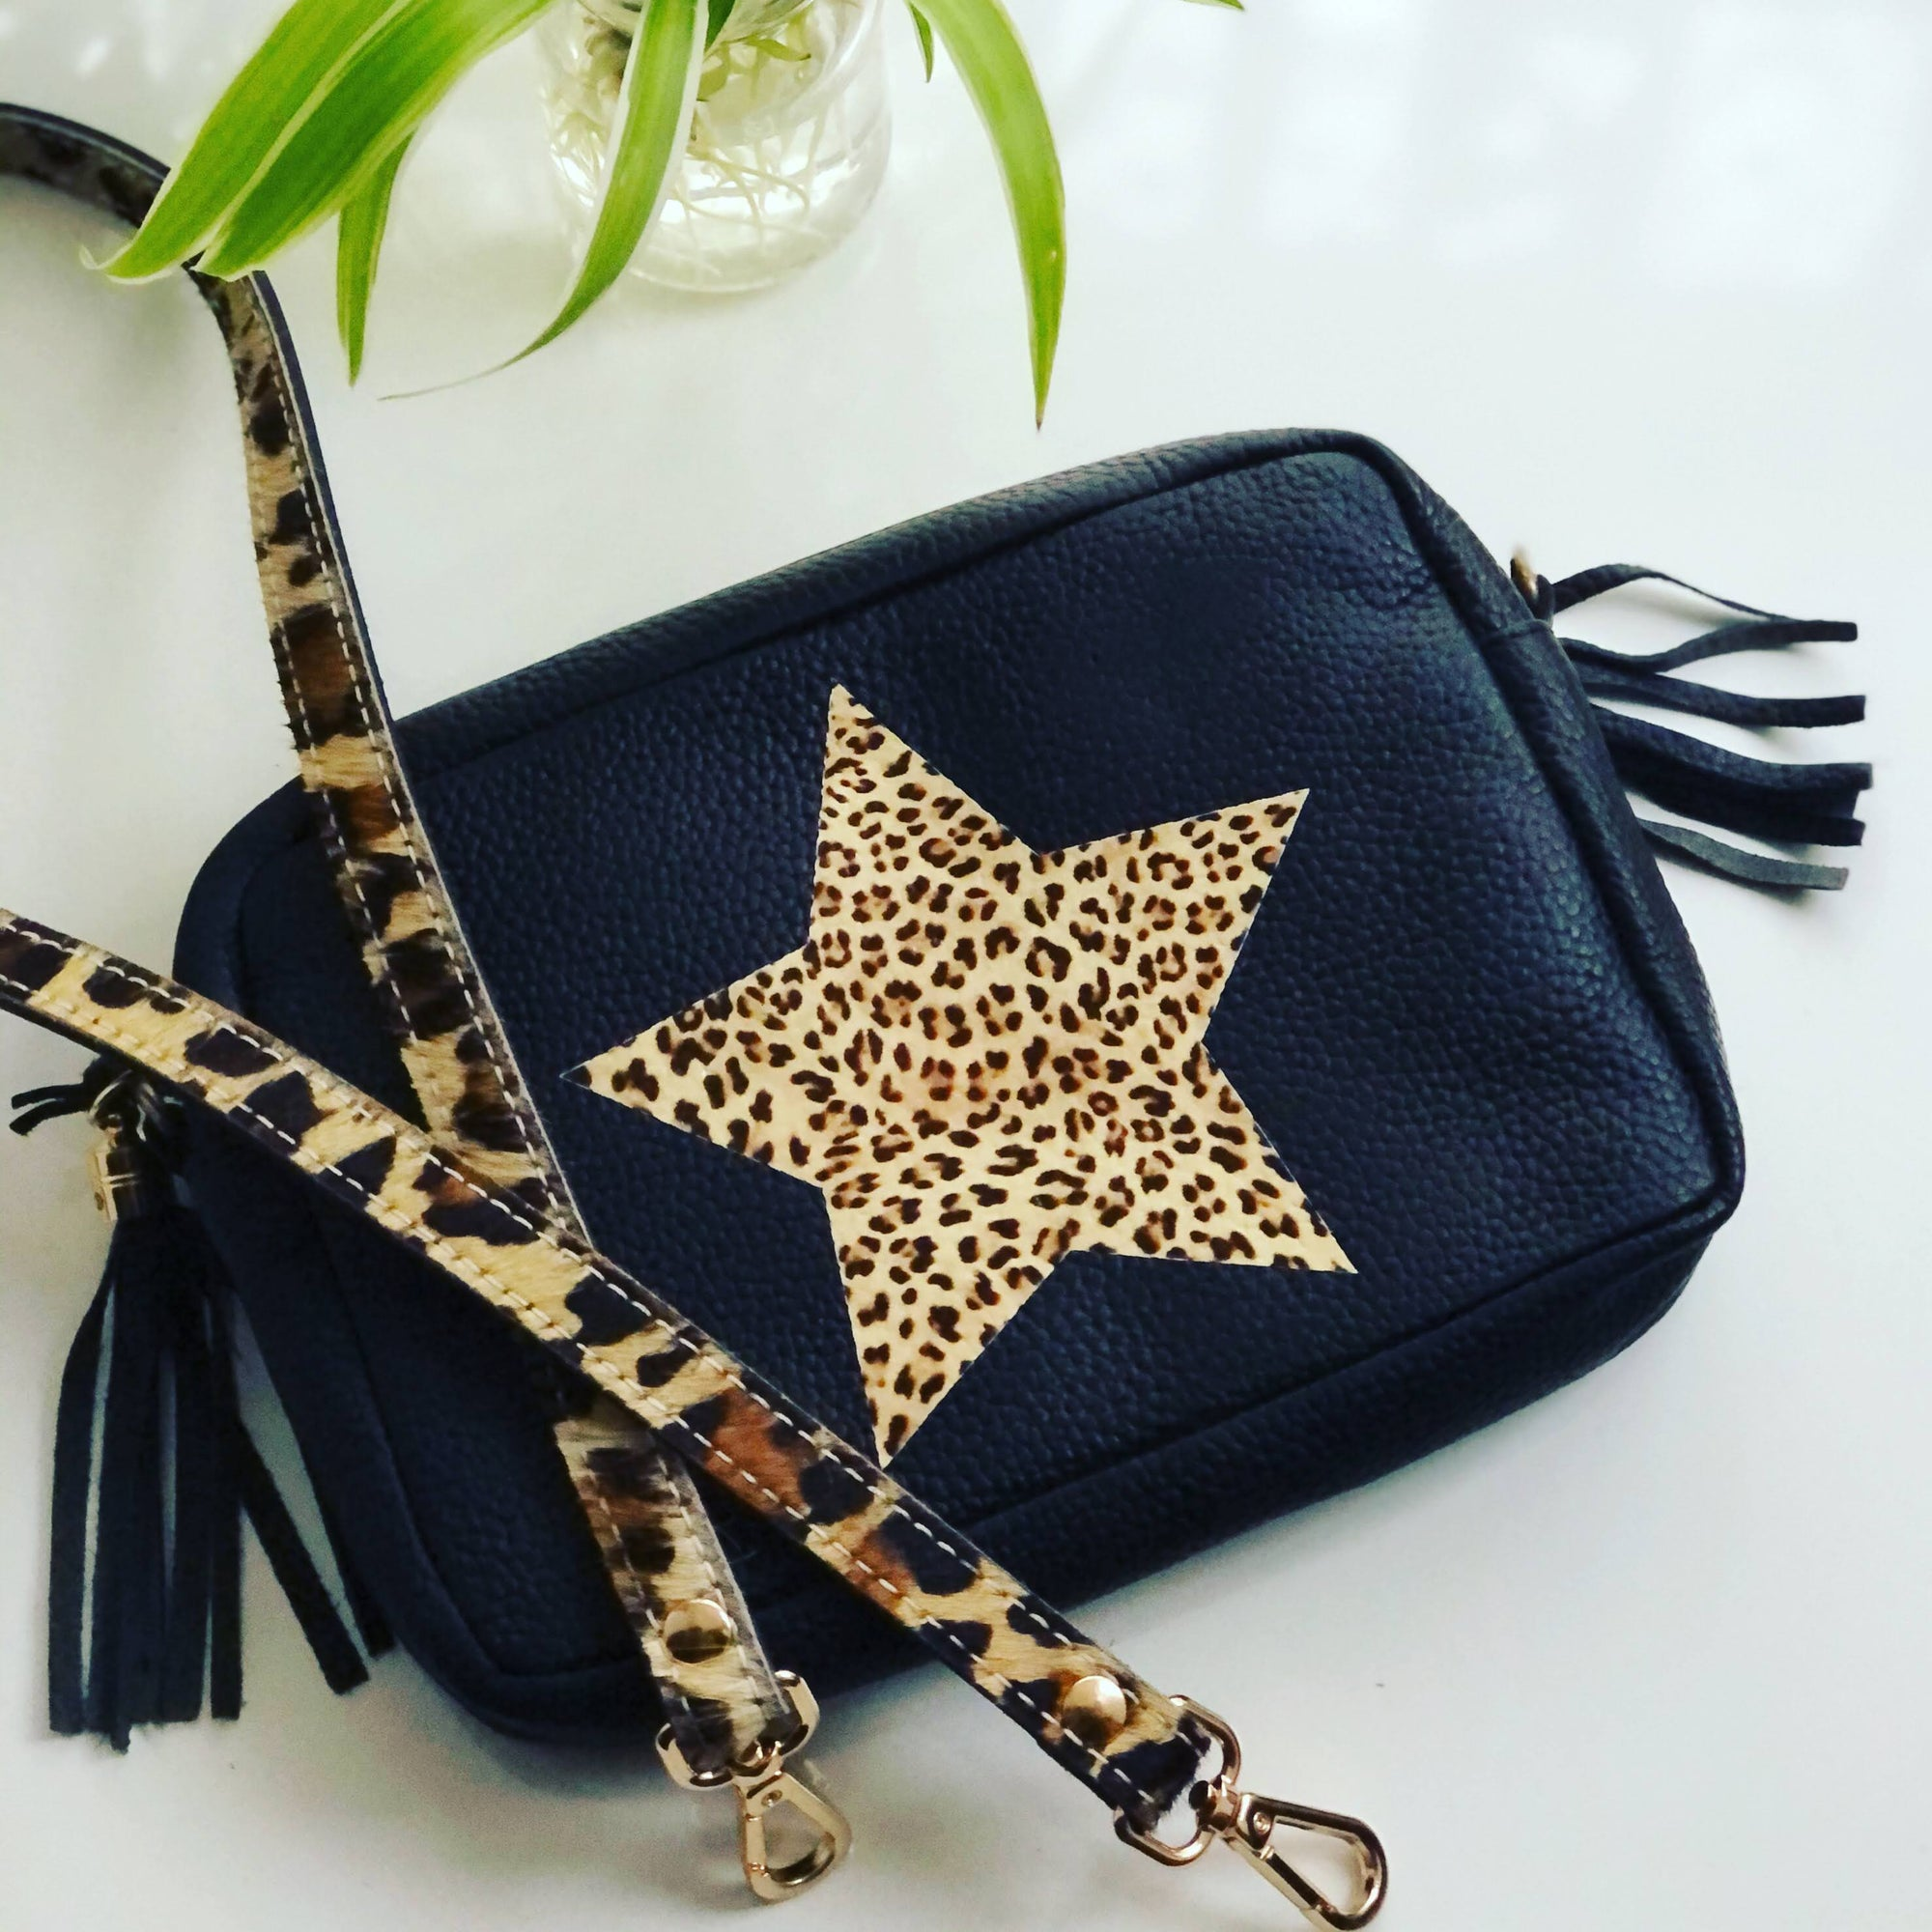 Leopard Star Camera Kylie Pebbled Leather Crossbody Clutch Bag